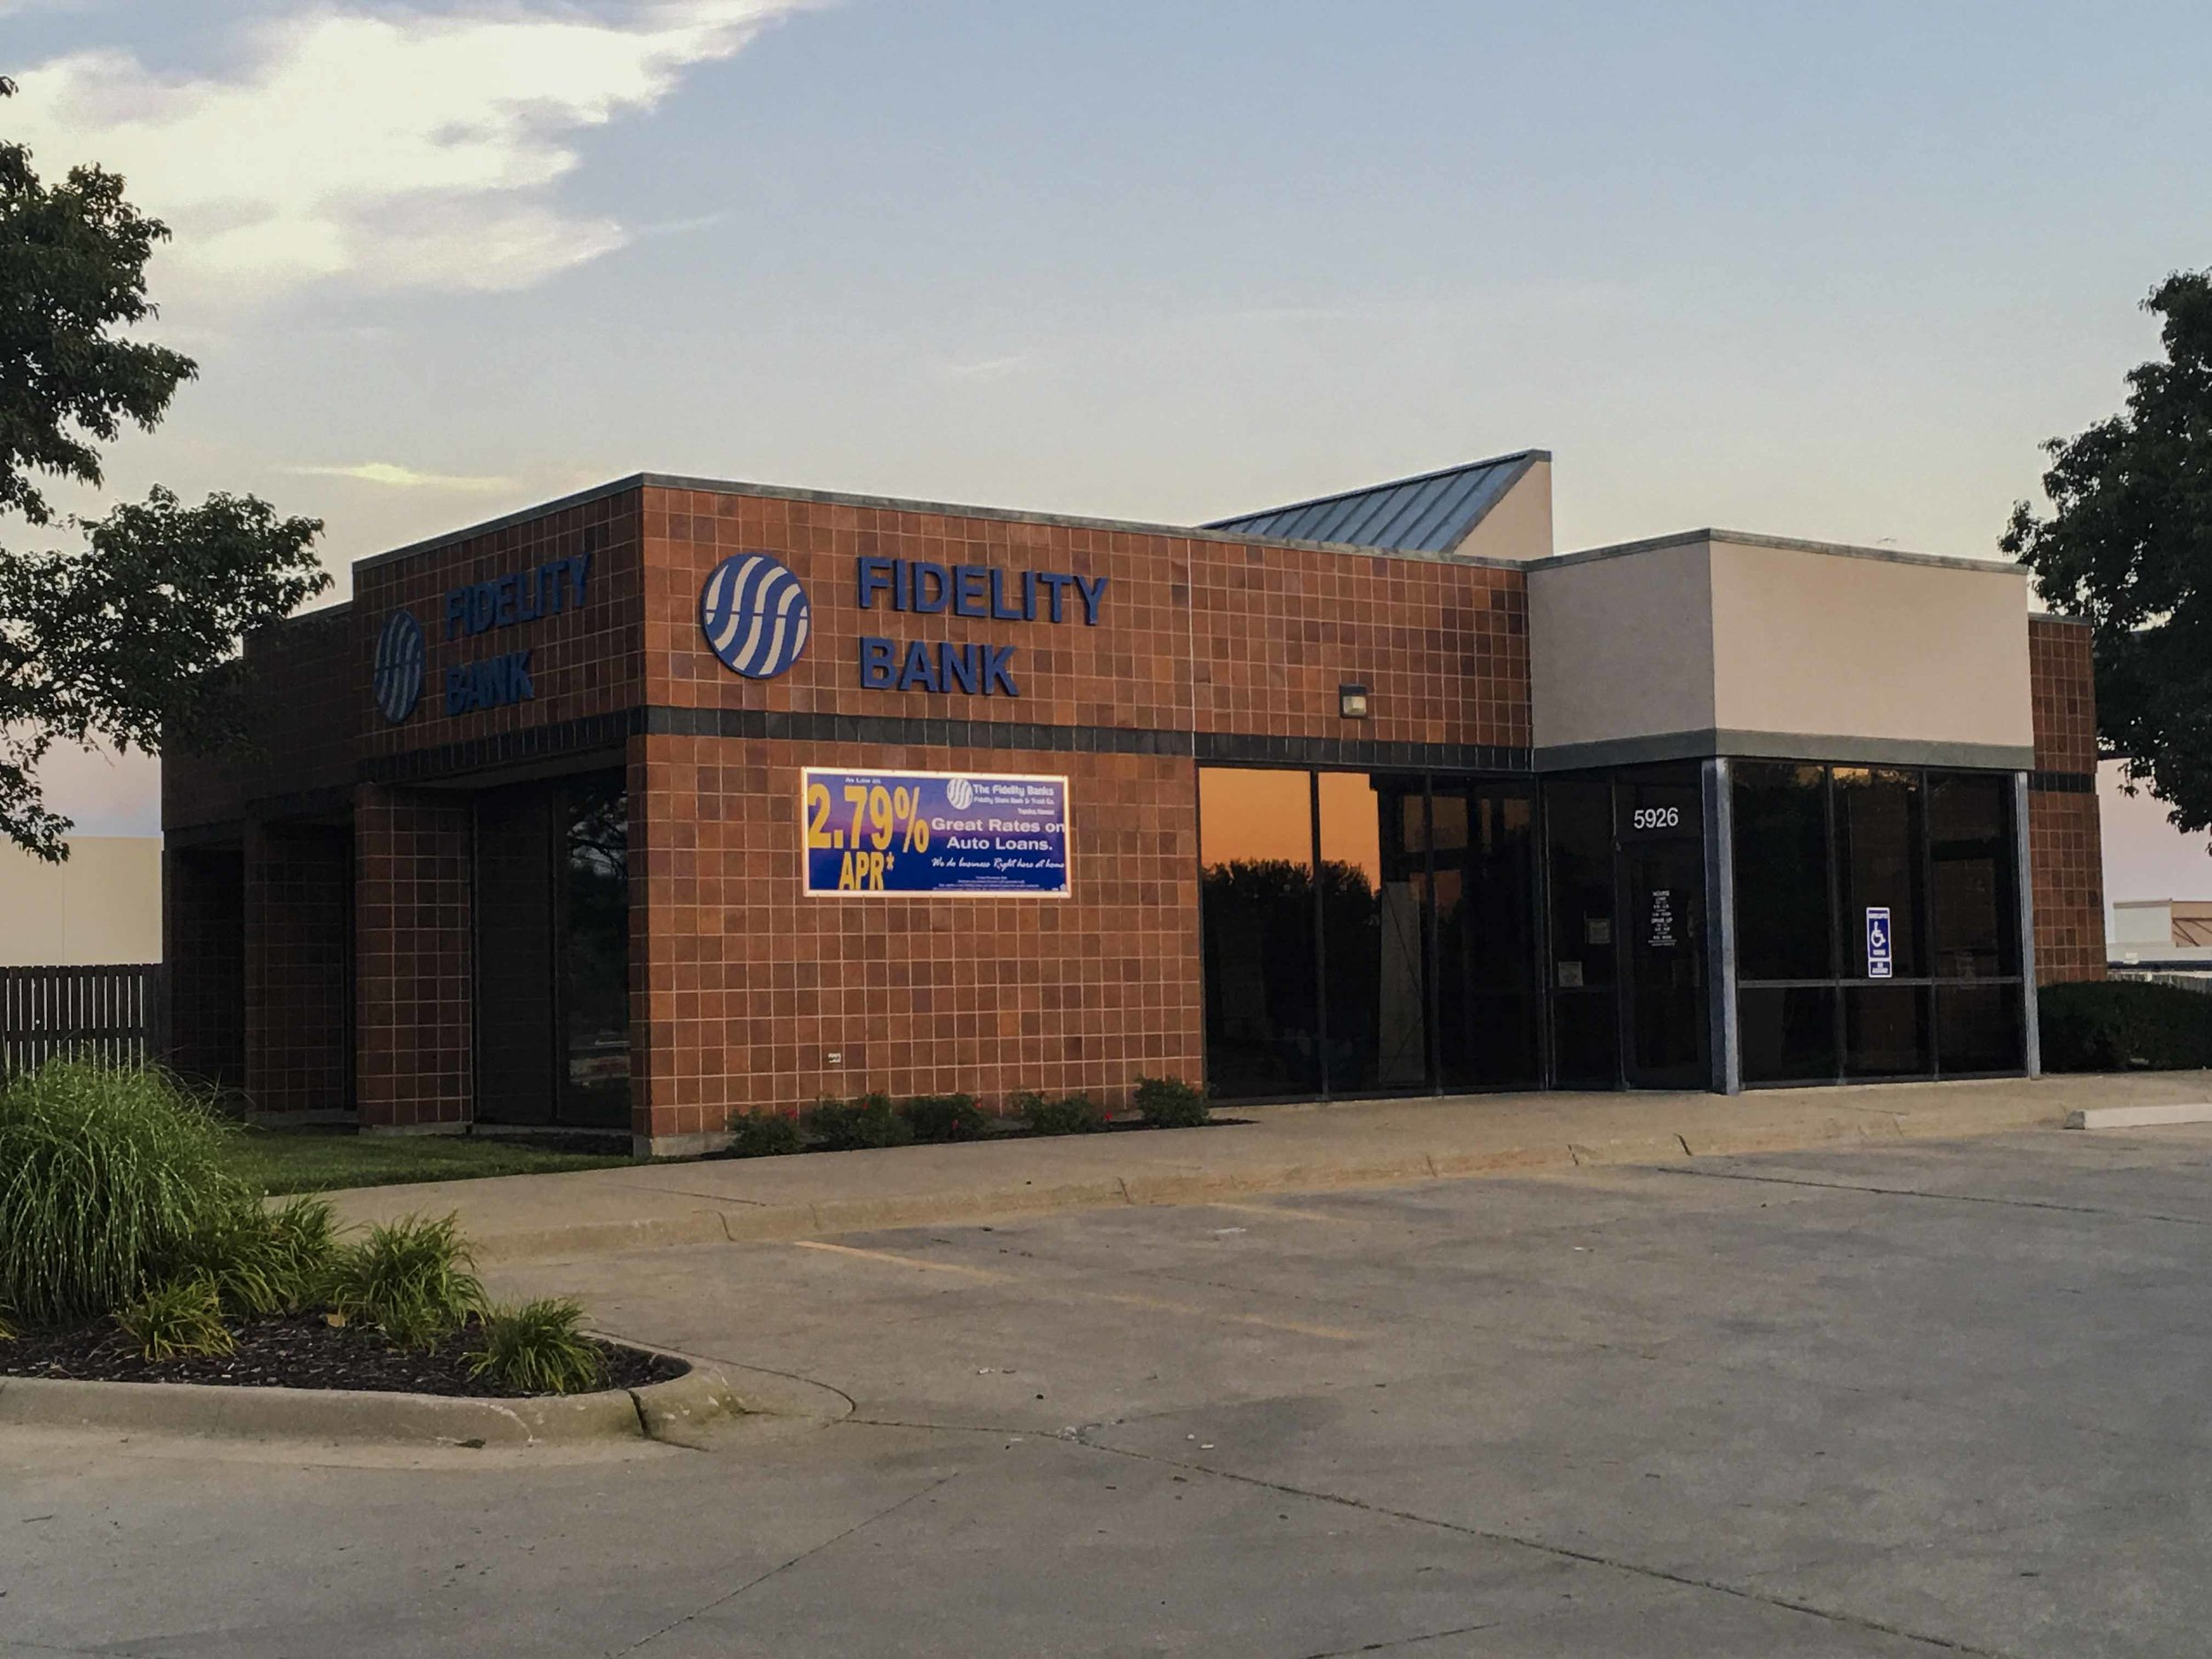 Fidelity State Bank West Ridge   Client:Fidelity State Bank